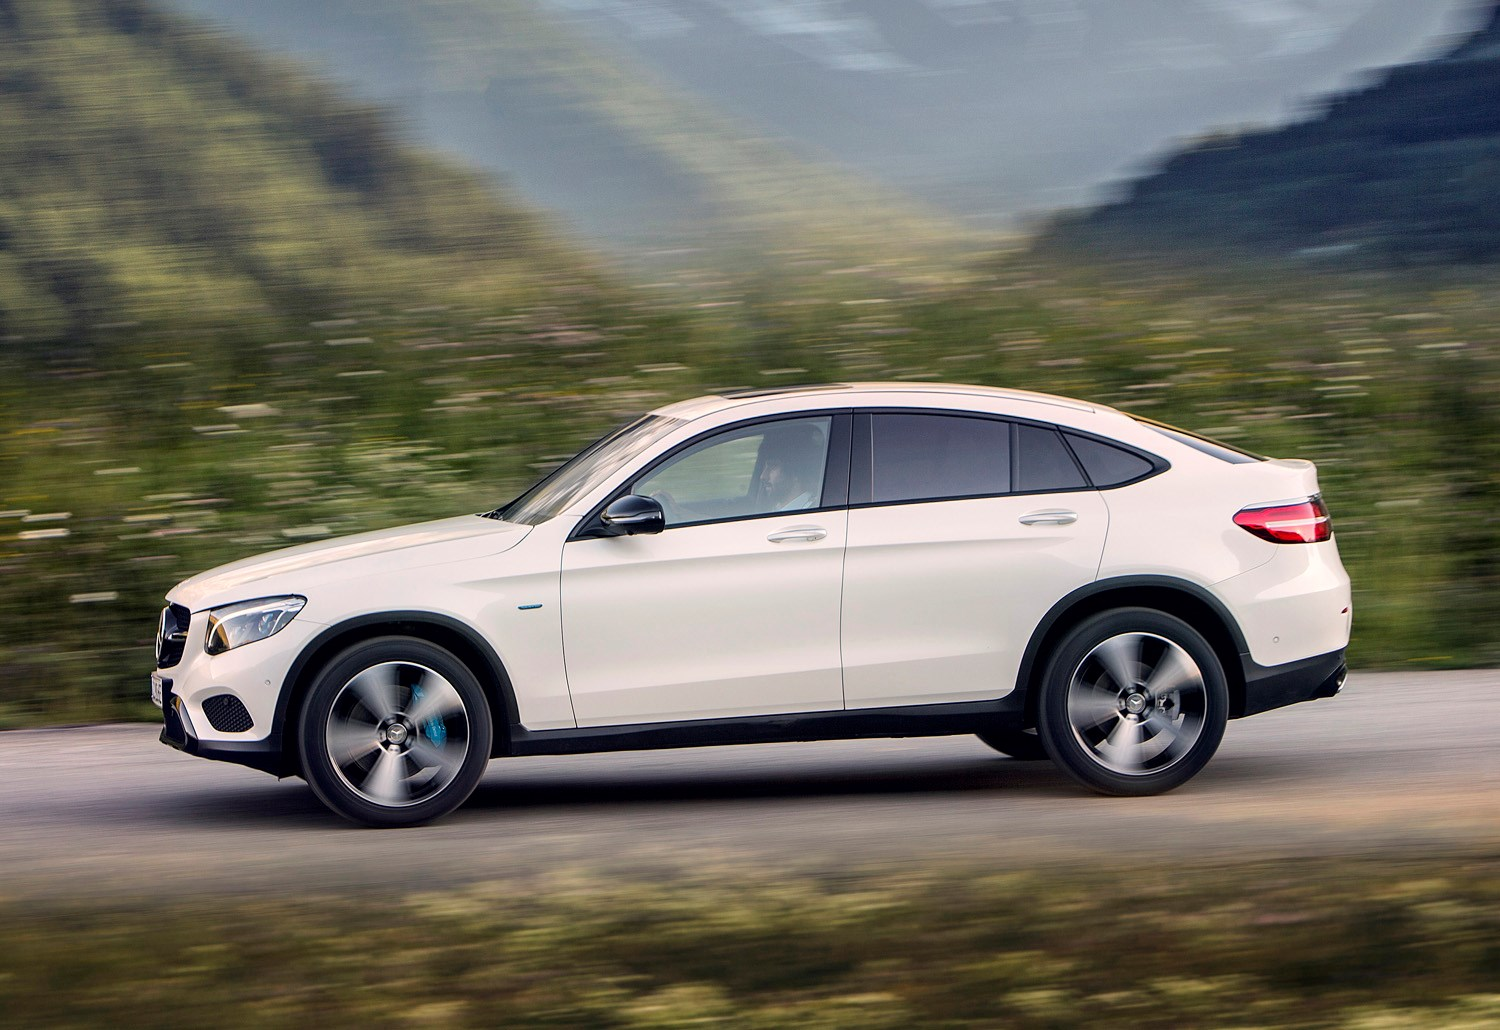 mercedes-benz glc-class coupe review (2016 - ) | parkers